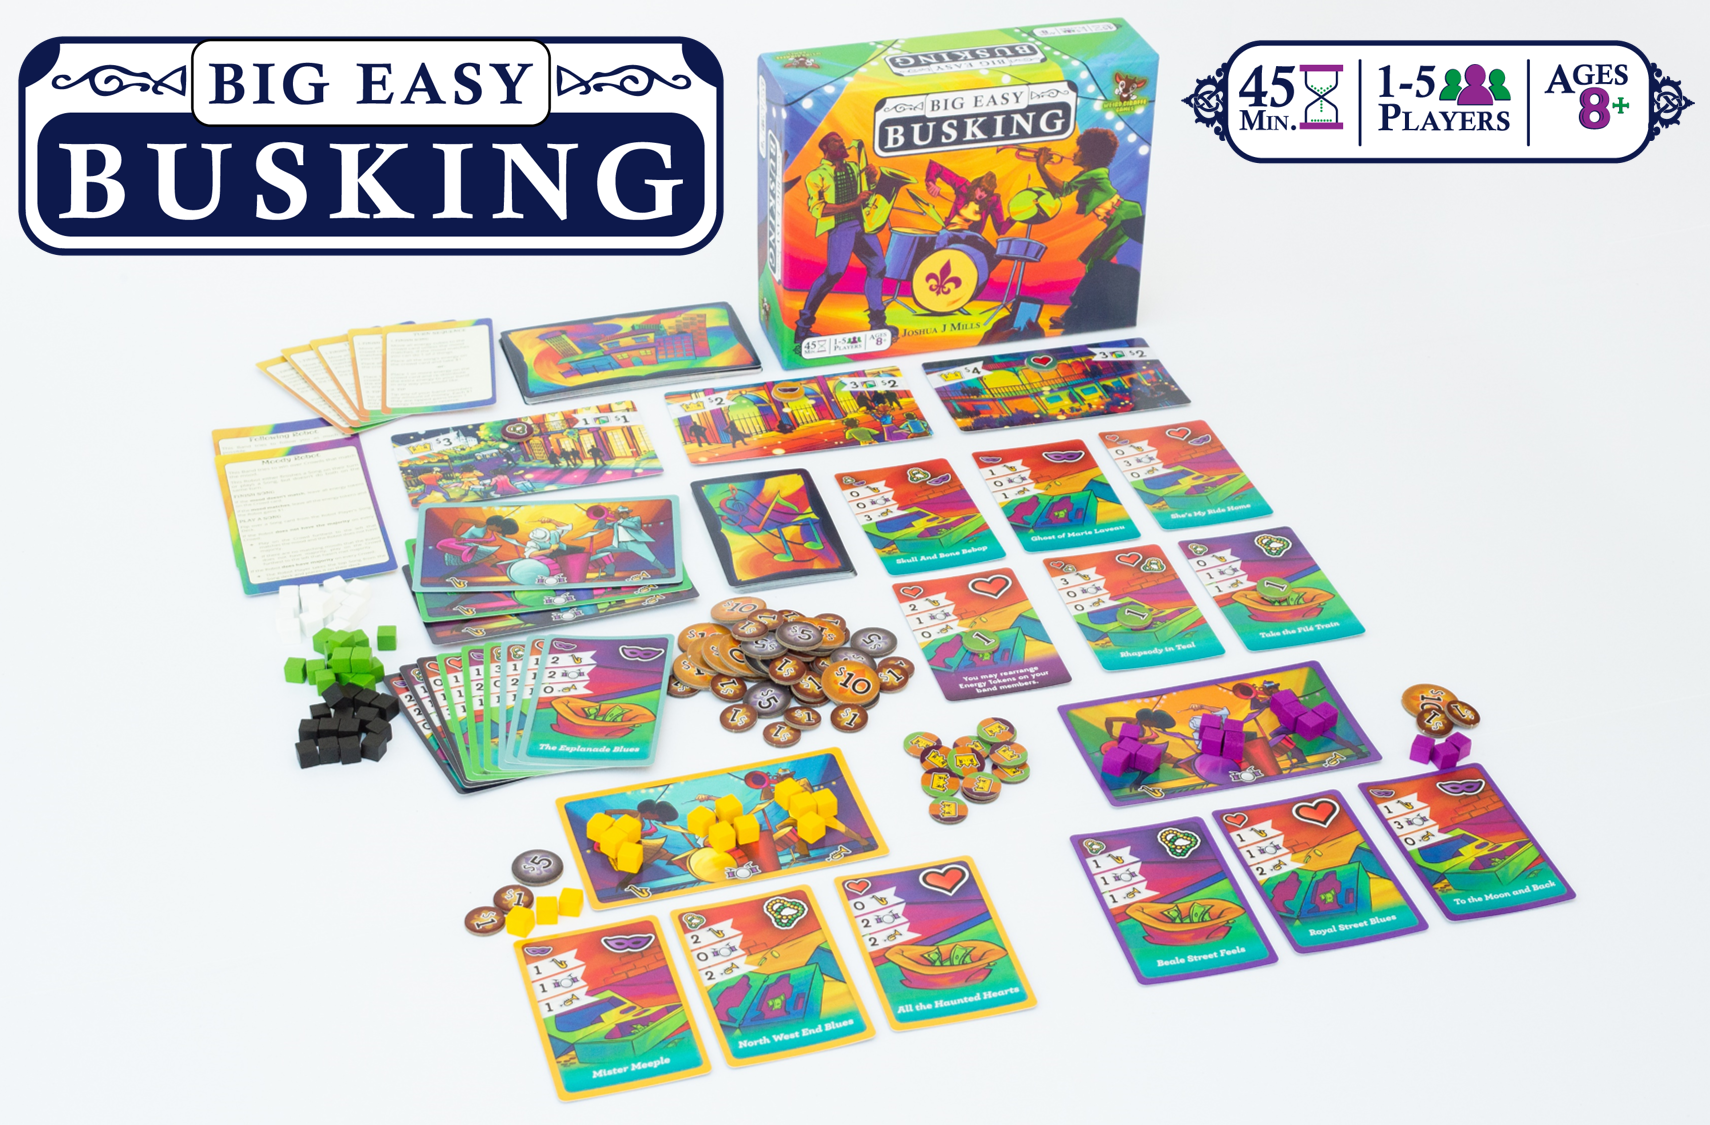 big easy busking materials